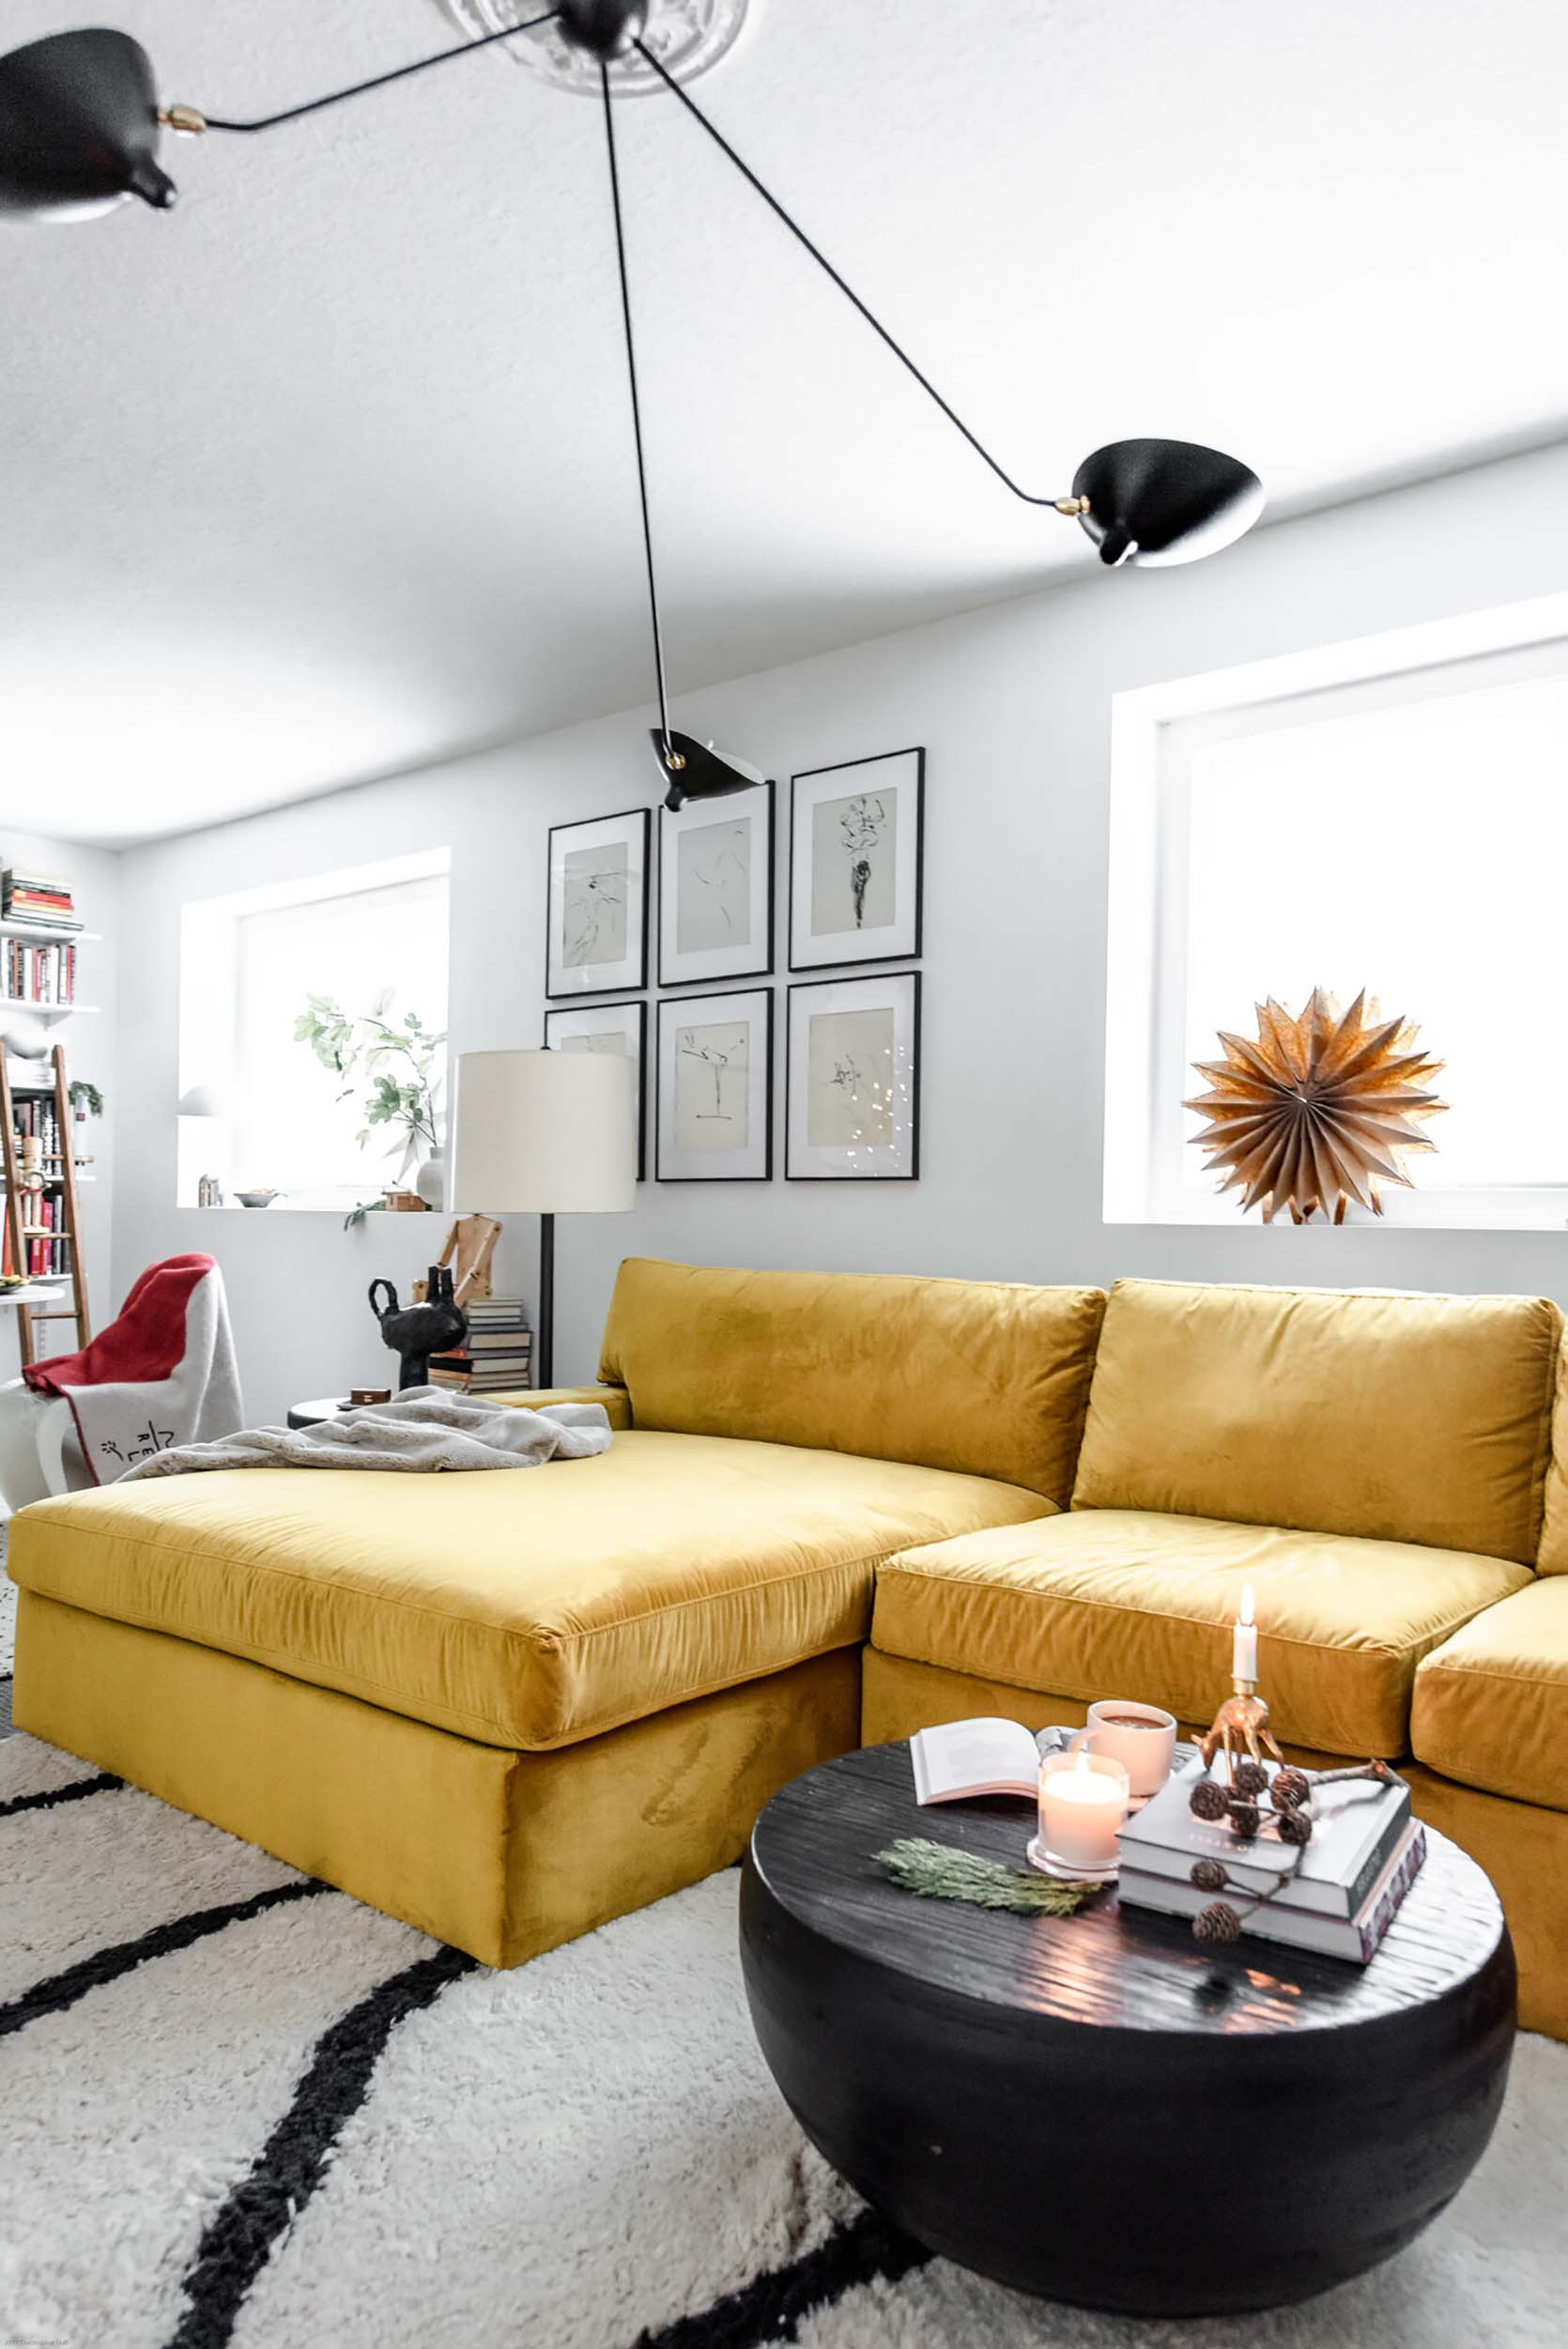 Lea Johnson's Basement Reveal: Workspace by Day and Family-Friendly Living Room by Night Best Children's Lighting & Home Decor Online Store